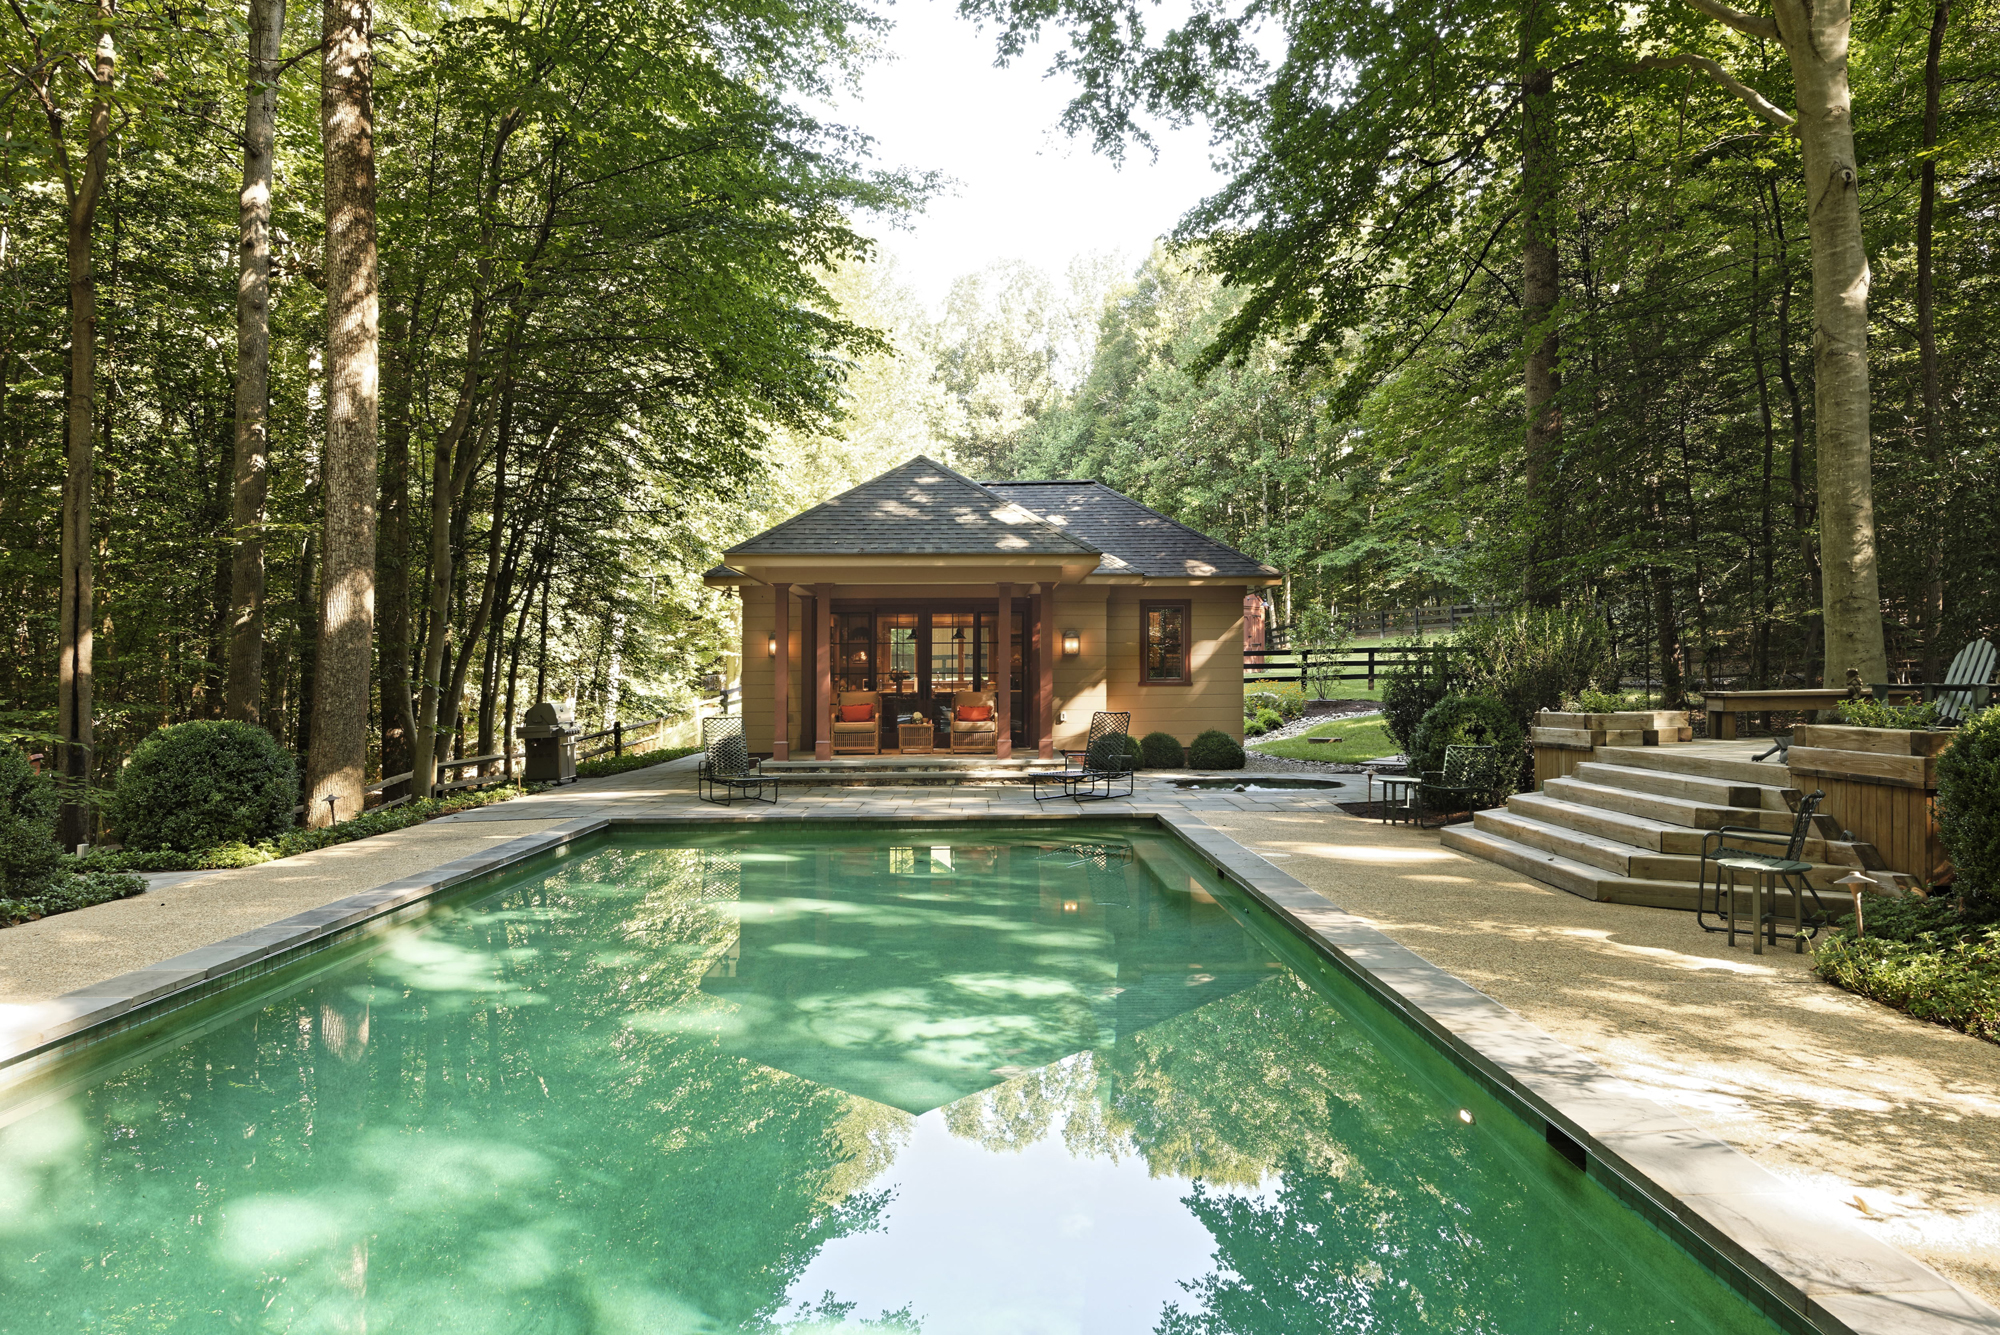 Pools pool houses photo gallery bowa design build for Pool and pool house